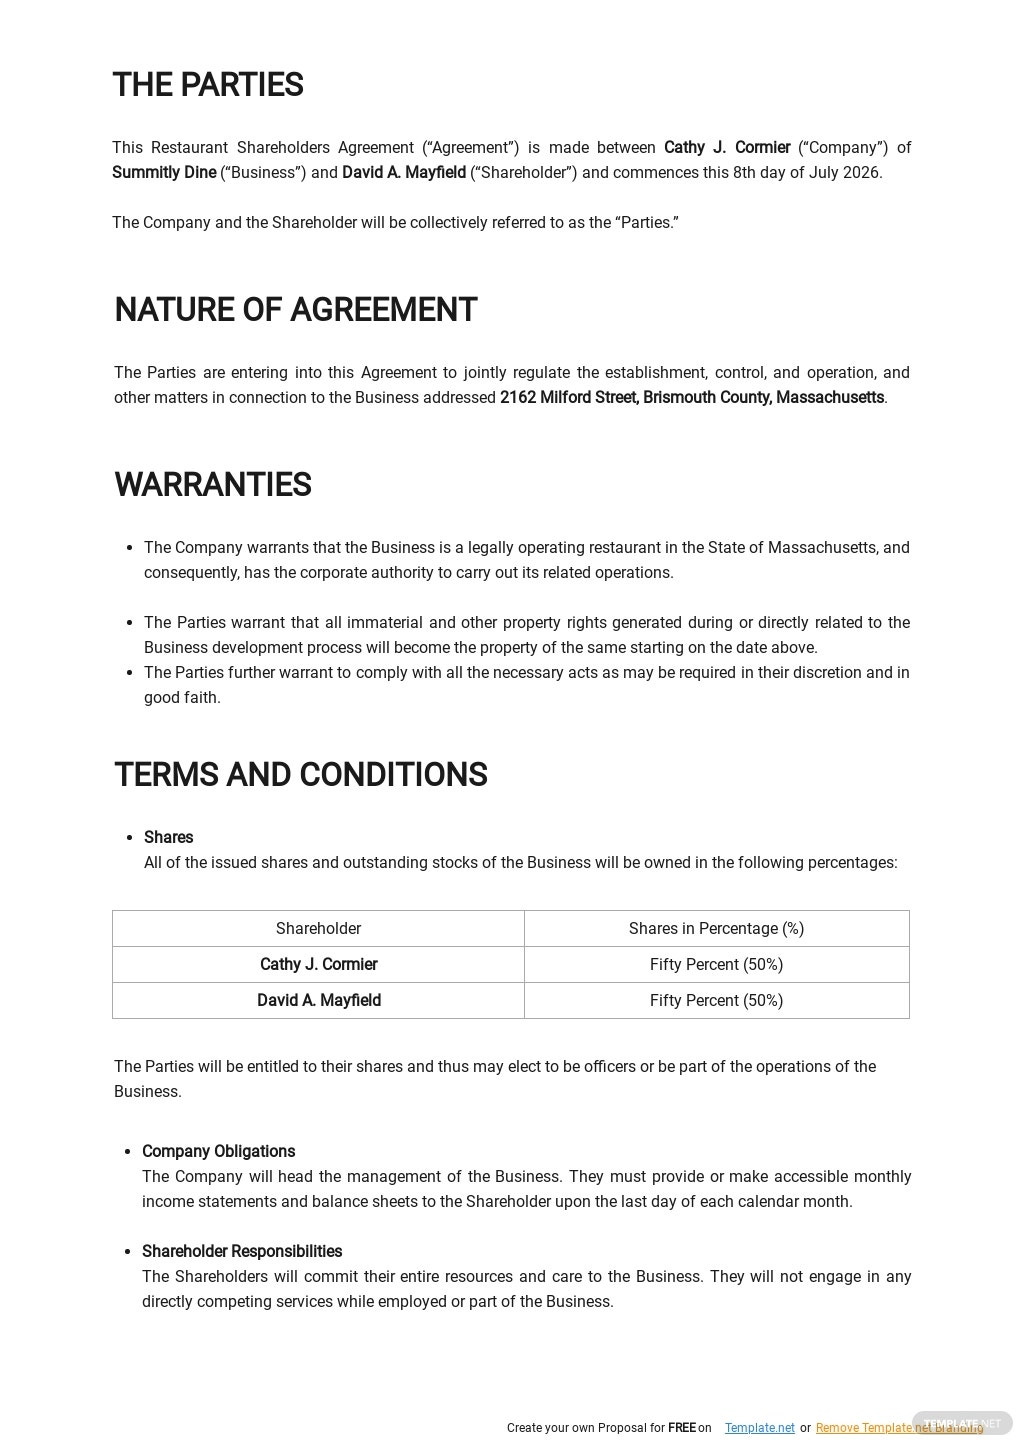 Restaurant Shareholders Agreement Template [Free PDF] - Google Docs, Word, Apple Pages, PDF